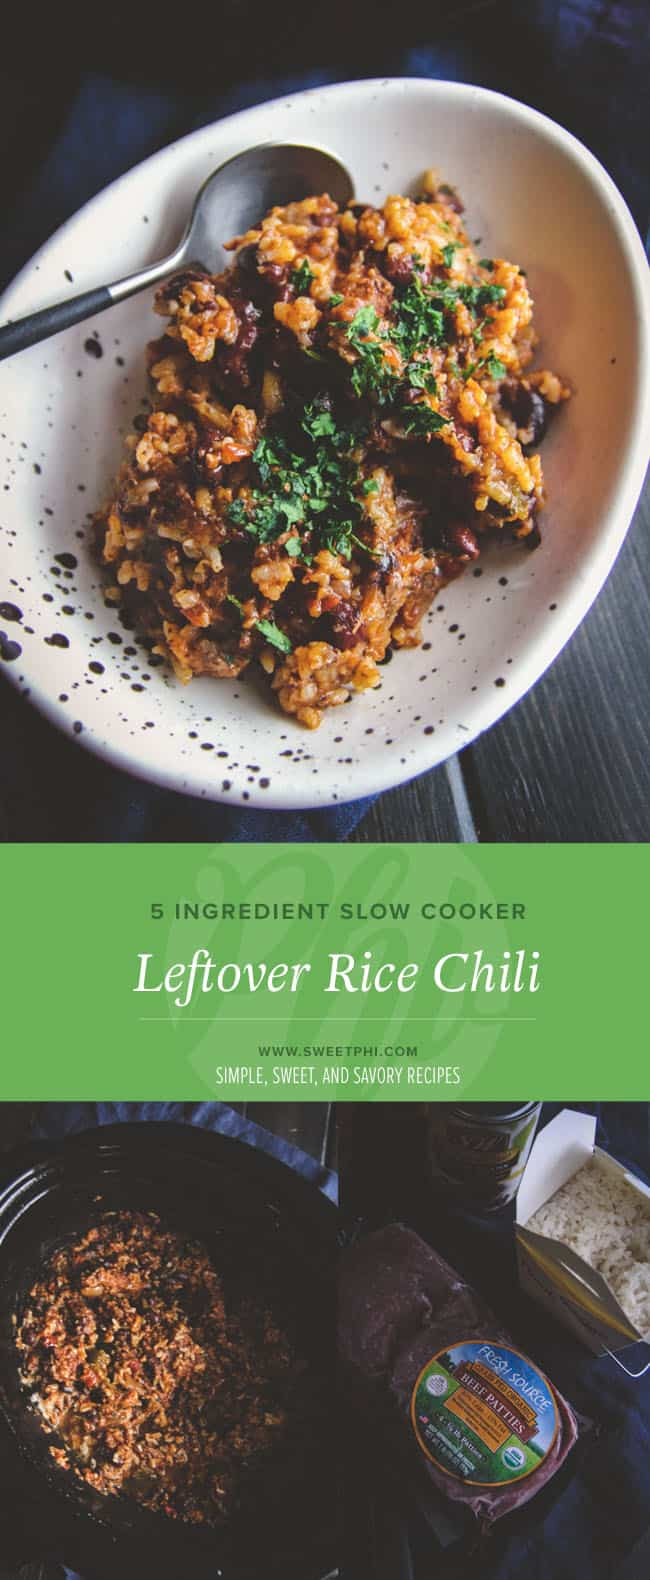 How to make the best leftover rice chili